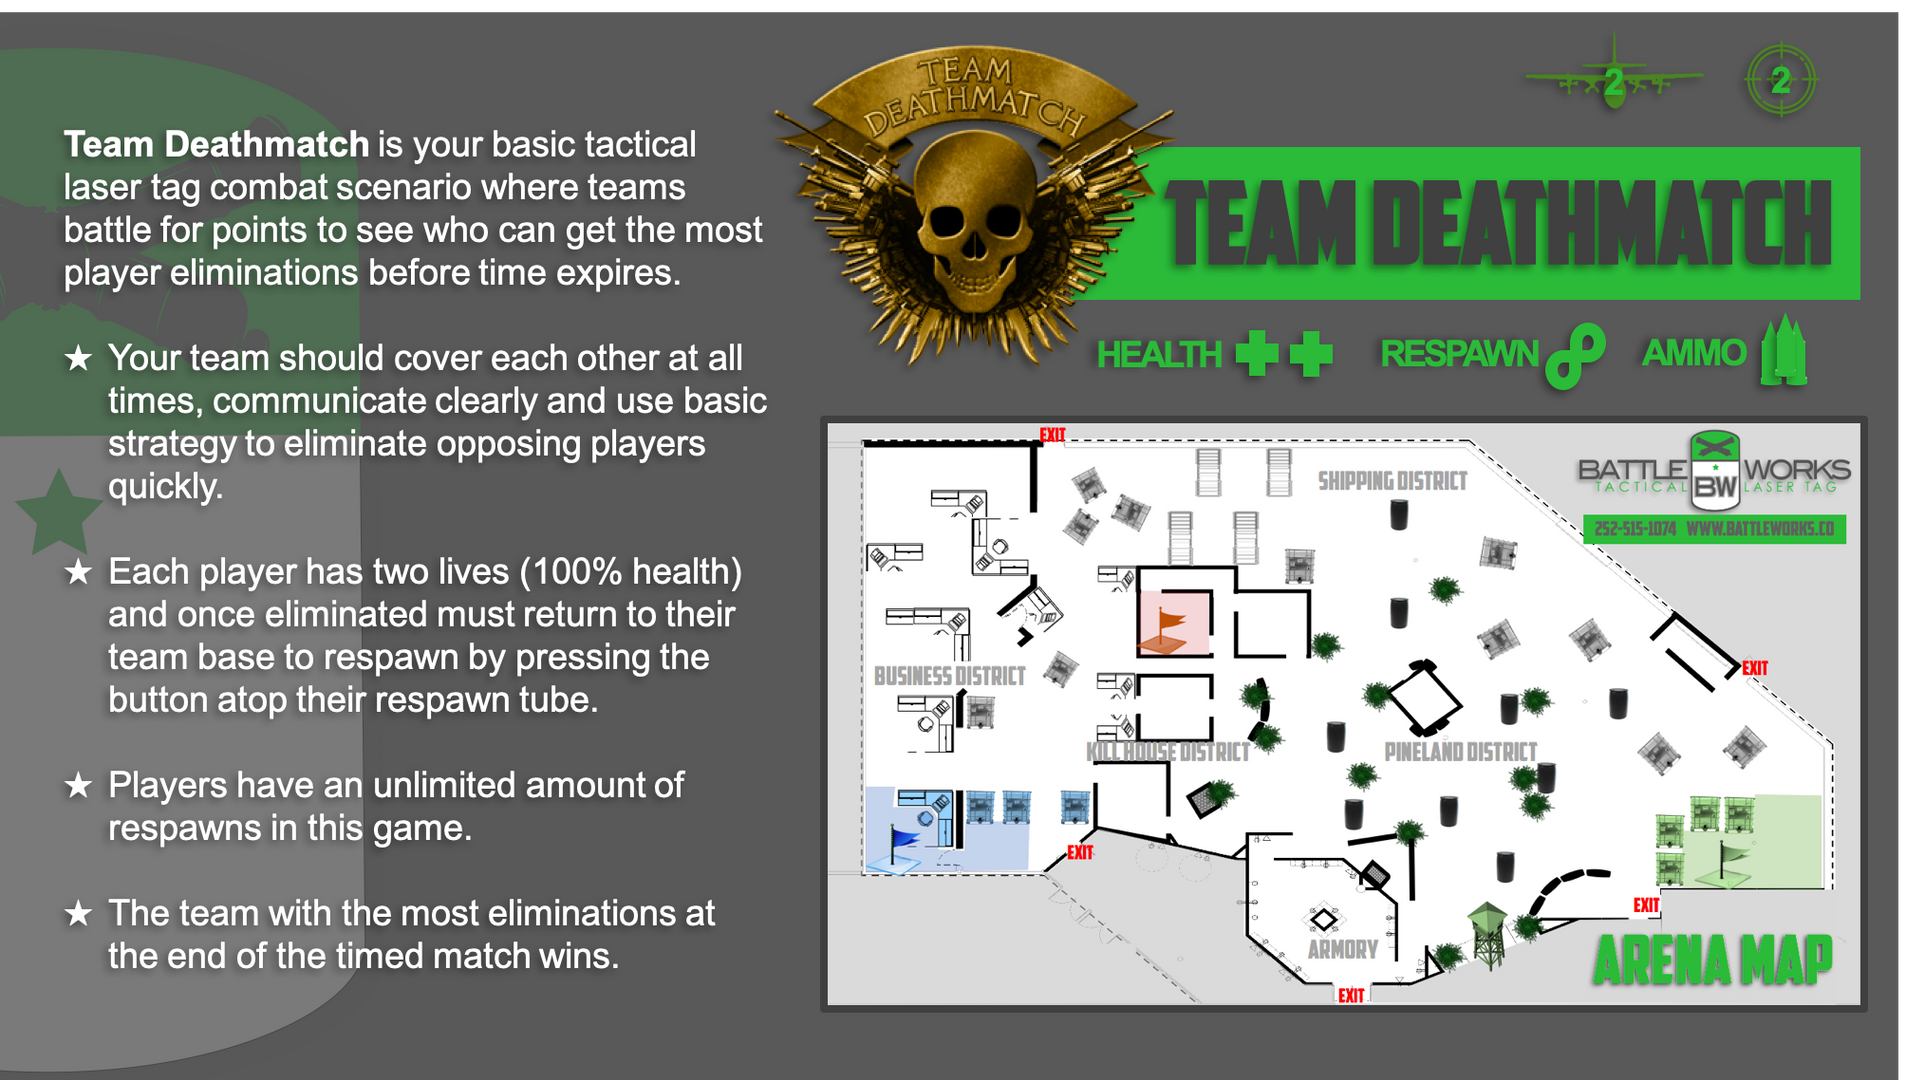 Battle Works Team Deathmatch.png